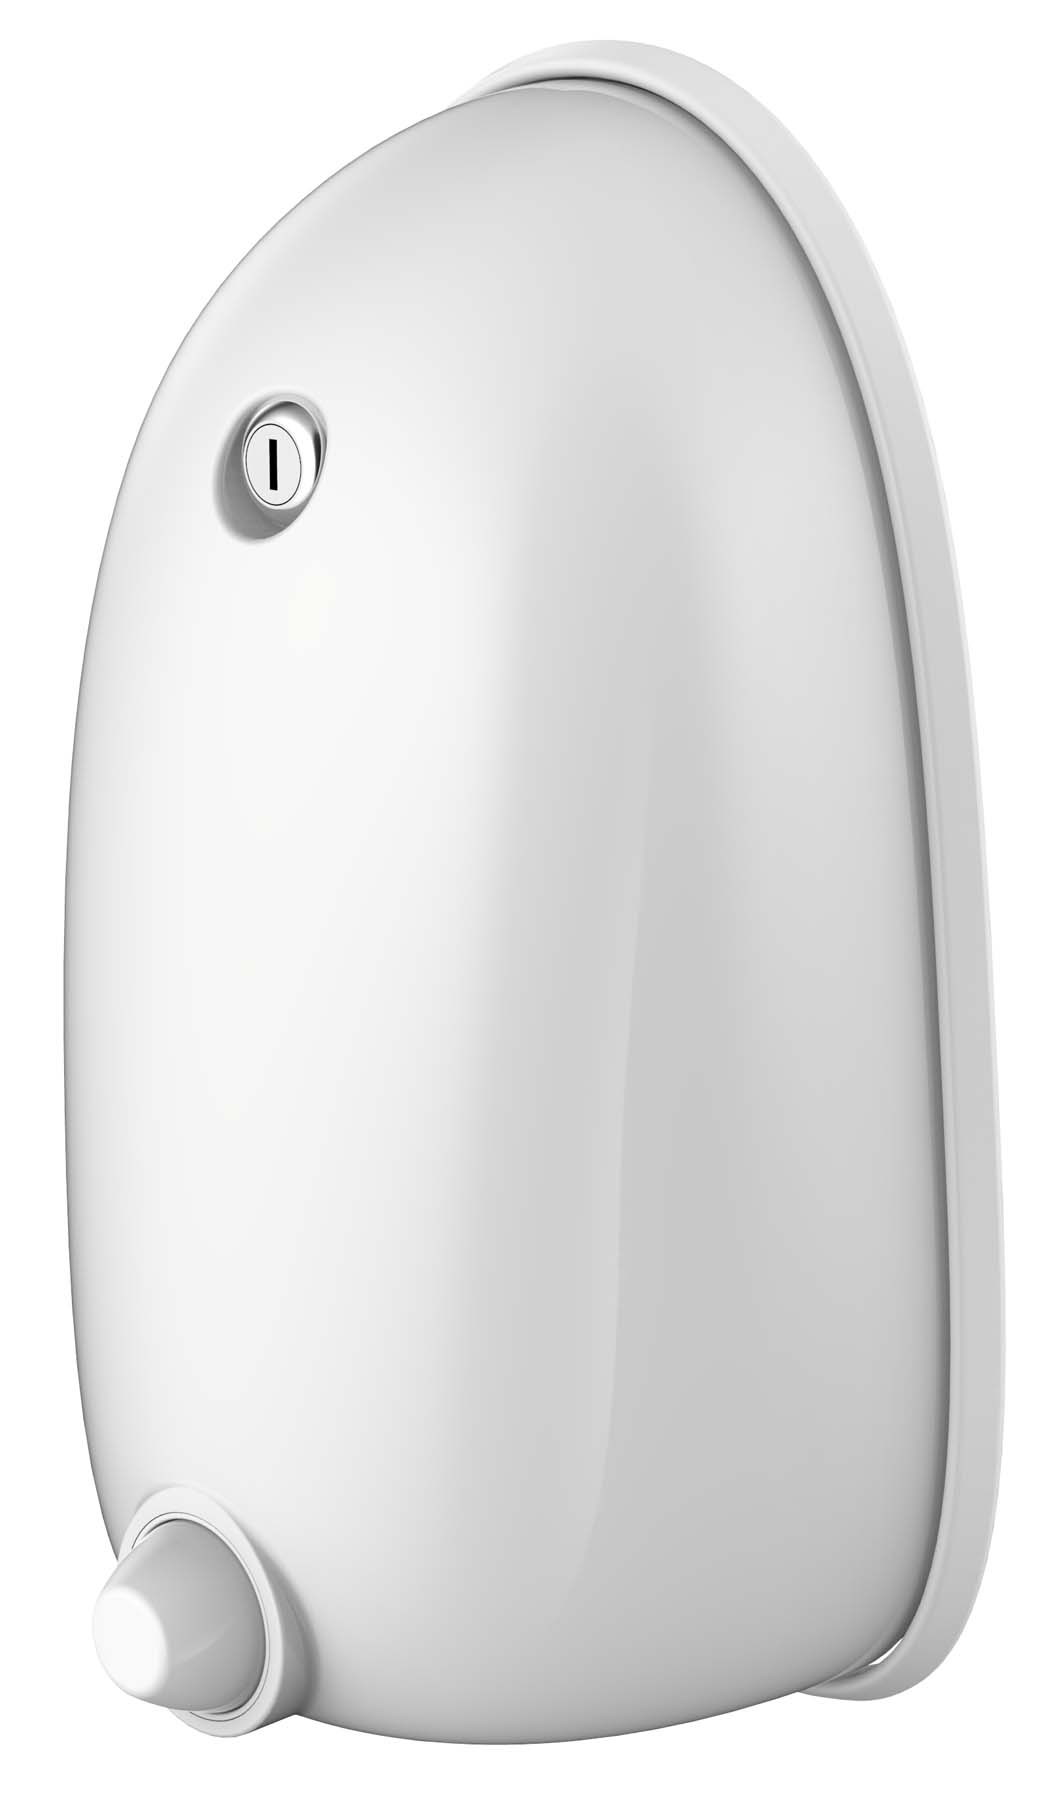 Unique Hand Soap Dispenser Ligature Resistant Soap Dispenser Behavioral Safety Products